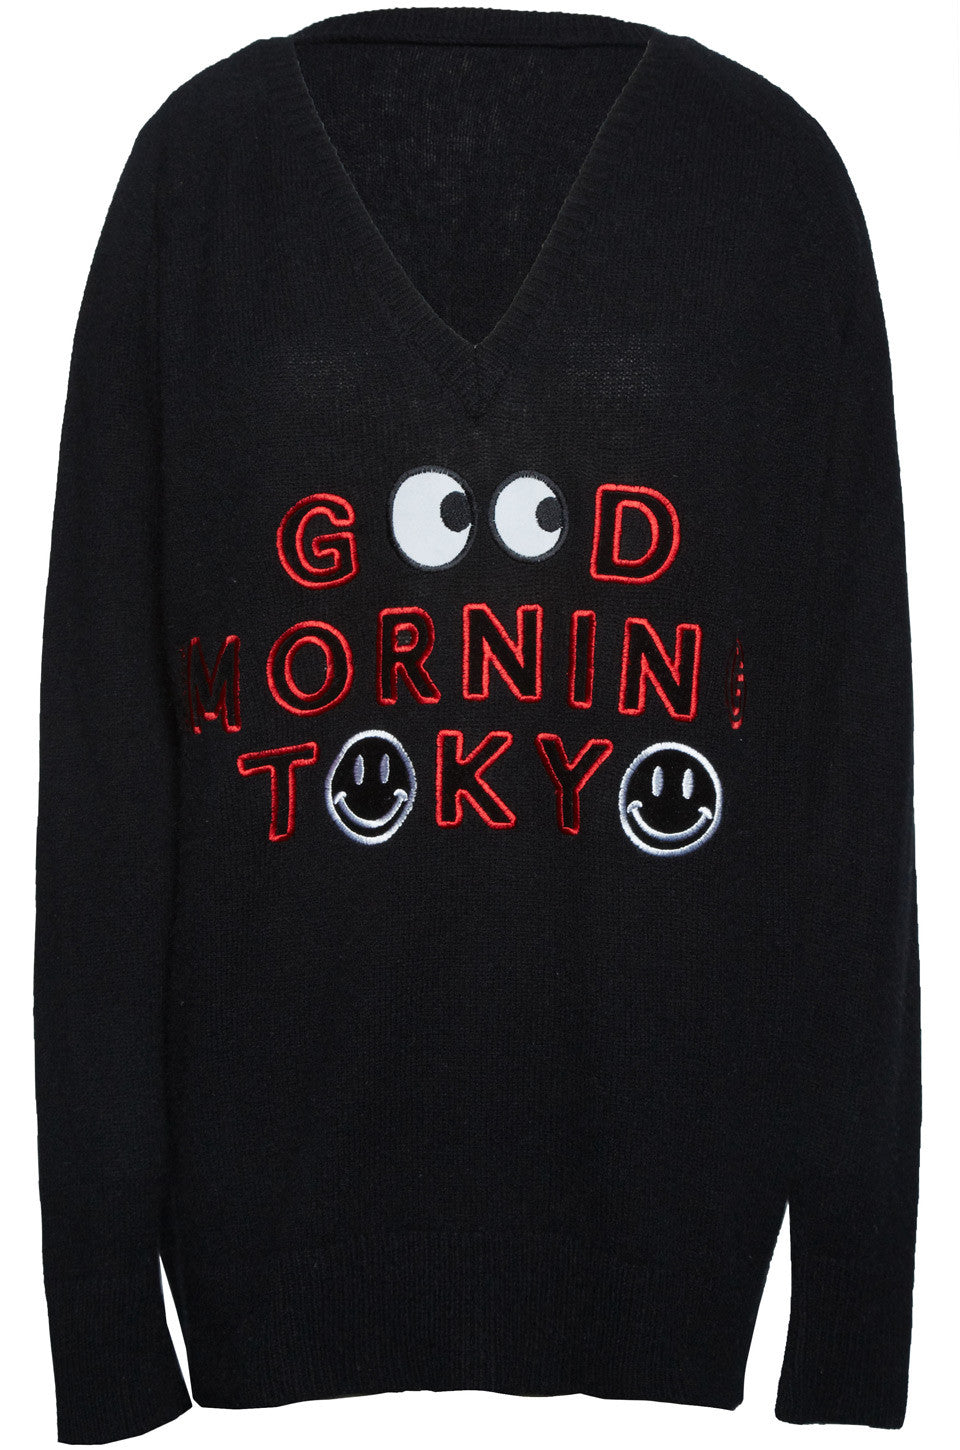 Macall Good Morning Tokyo Oversized V-Neck Cashmere Sweater - Lauren Moshi - 2